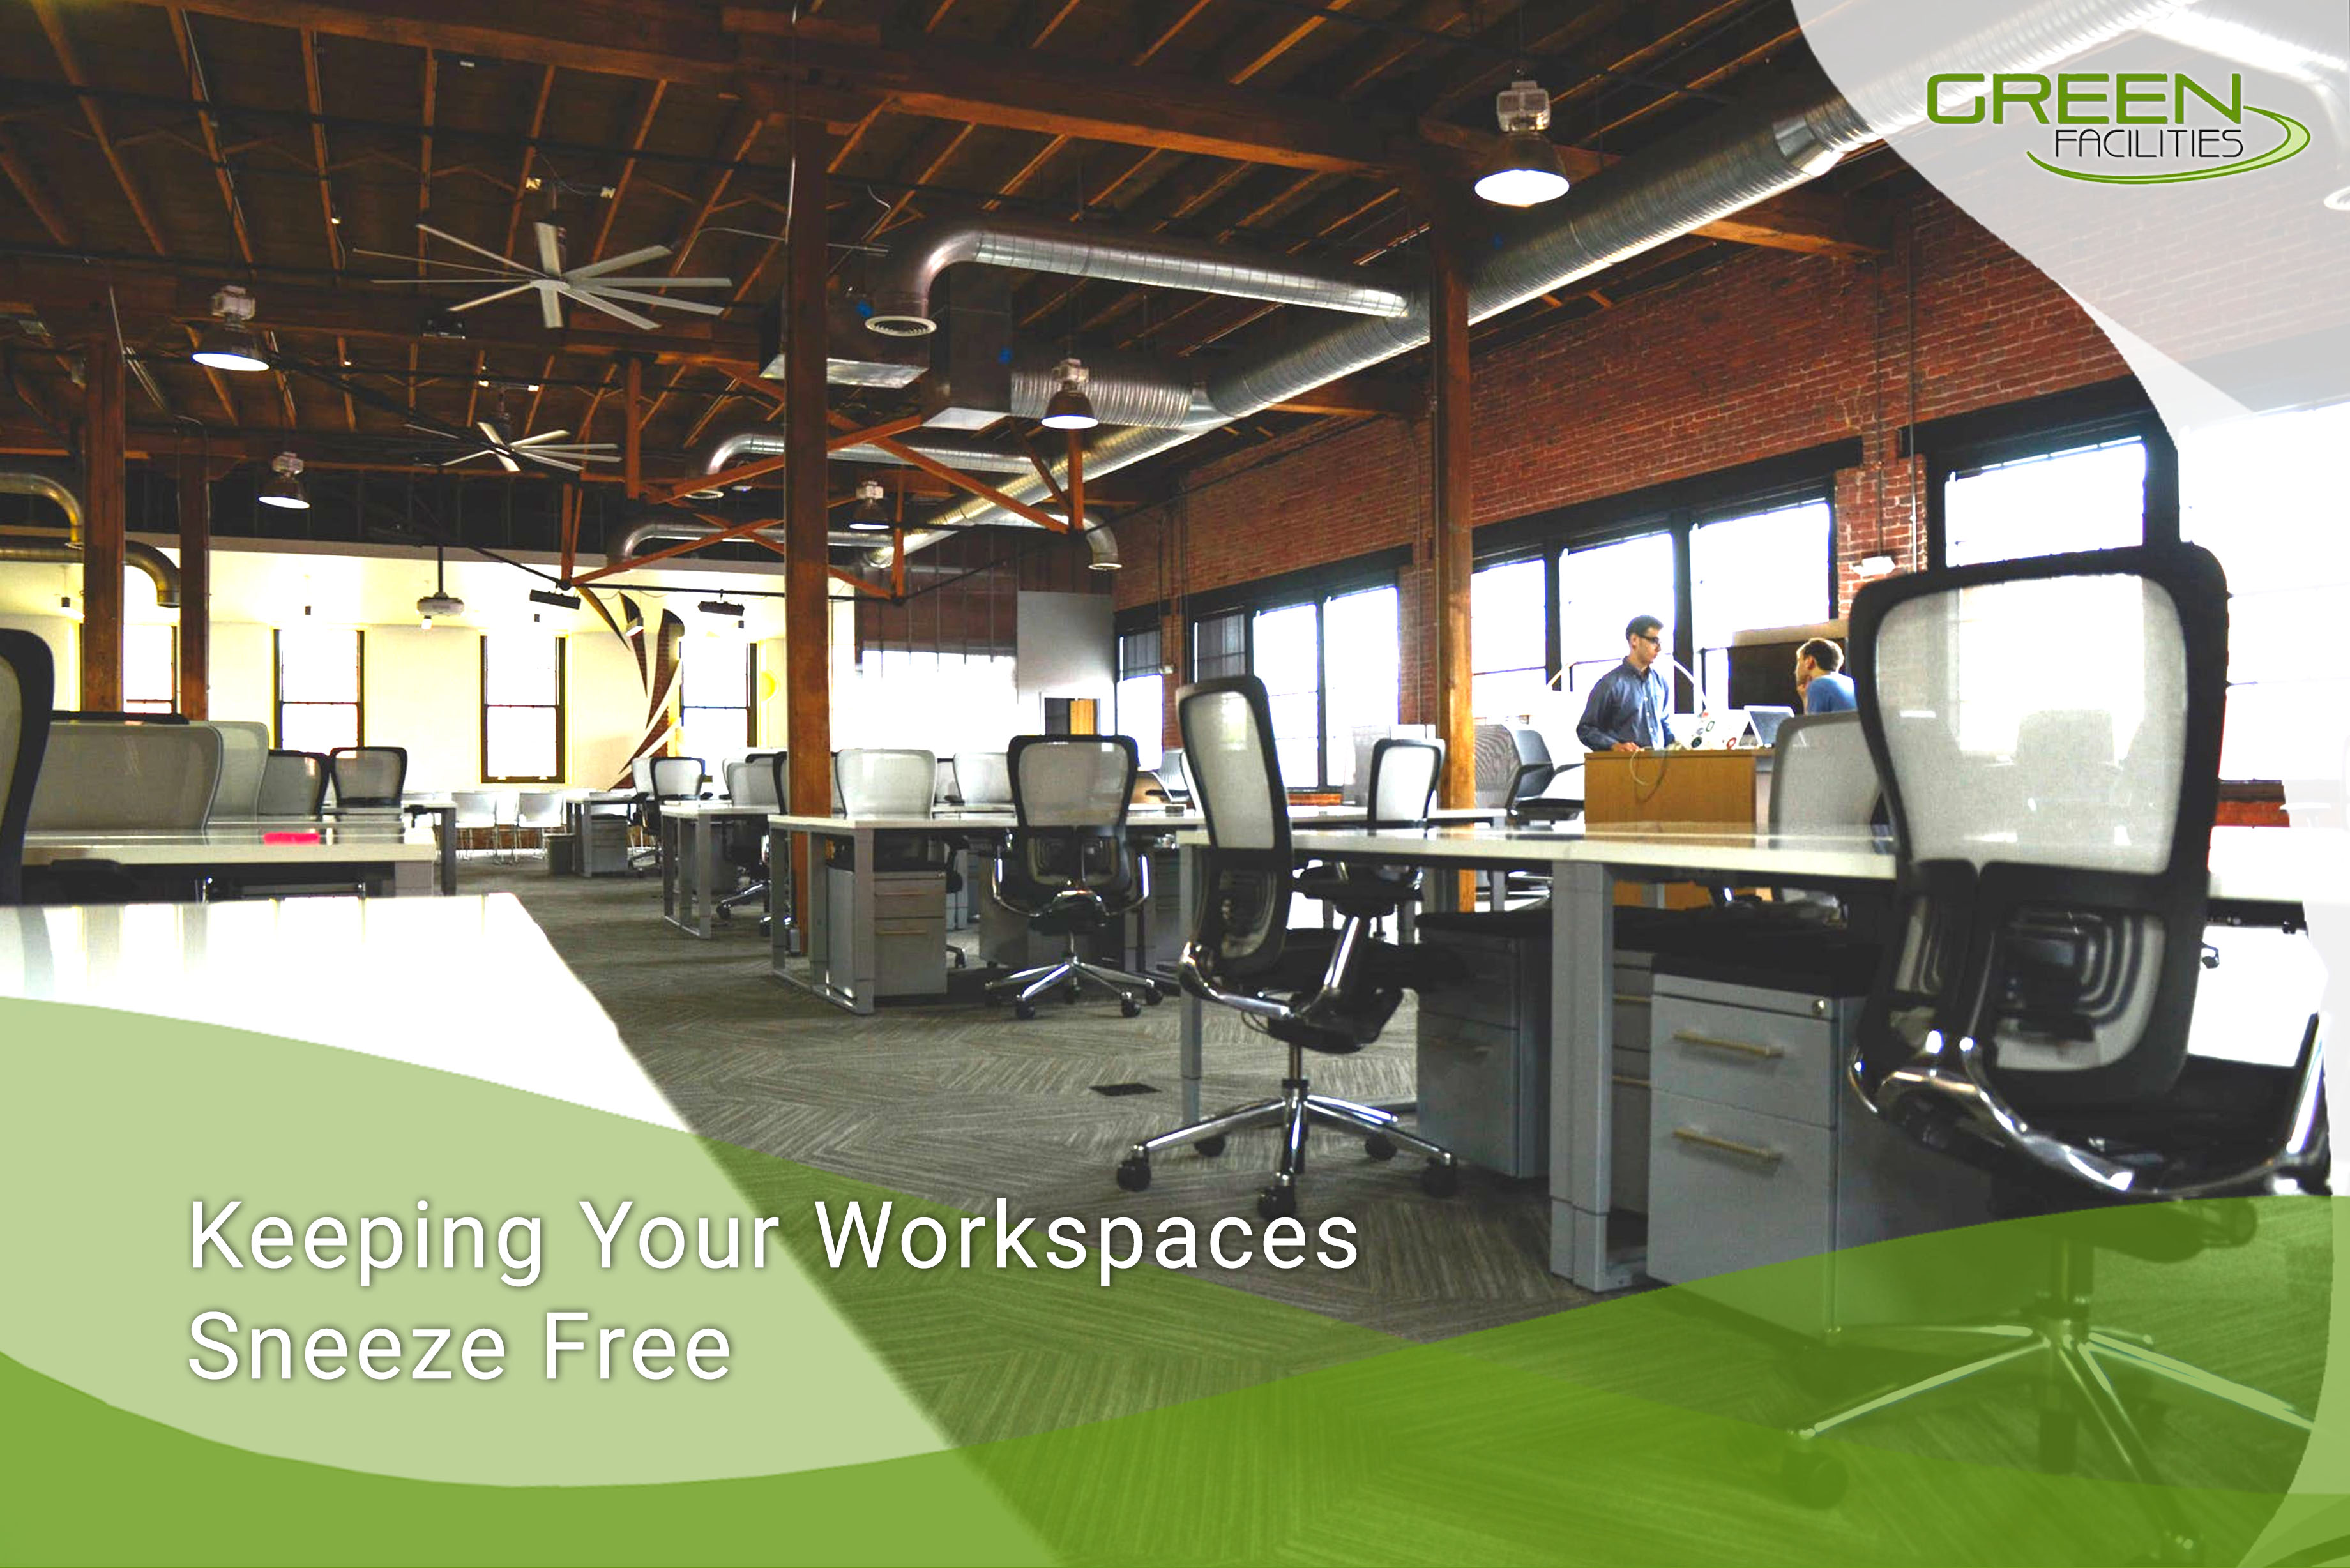 Keeping Your Workspaces Sneeze Free